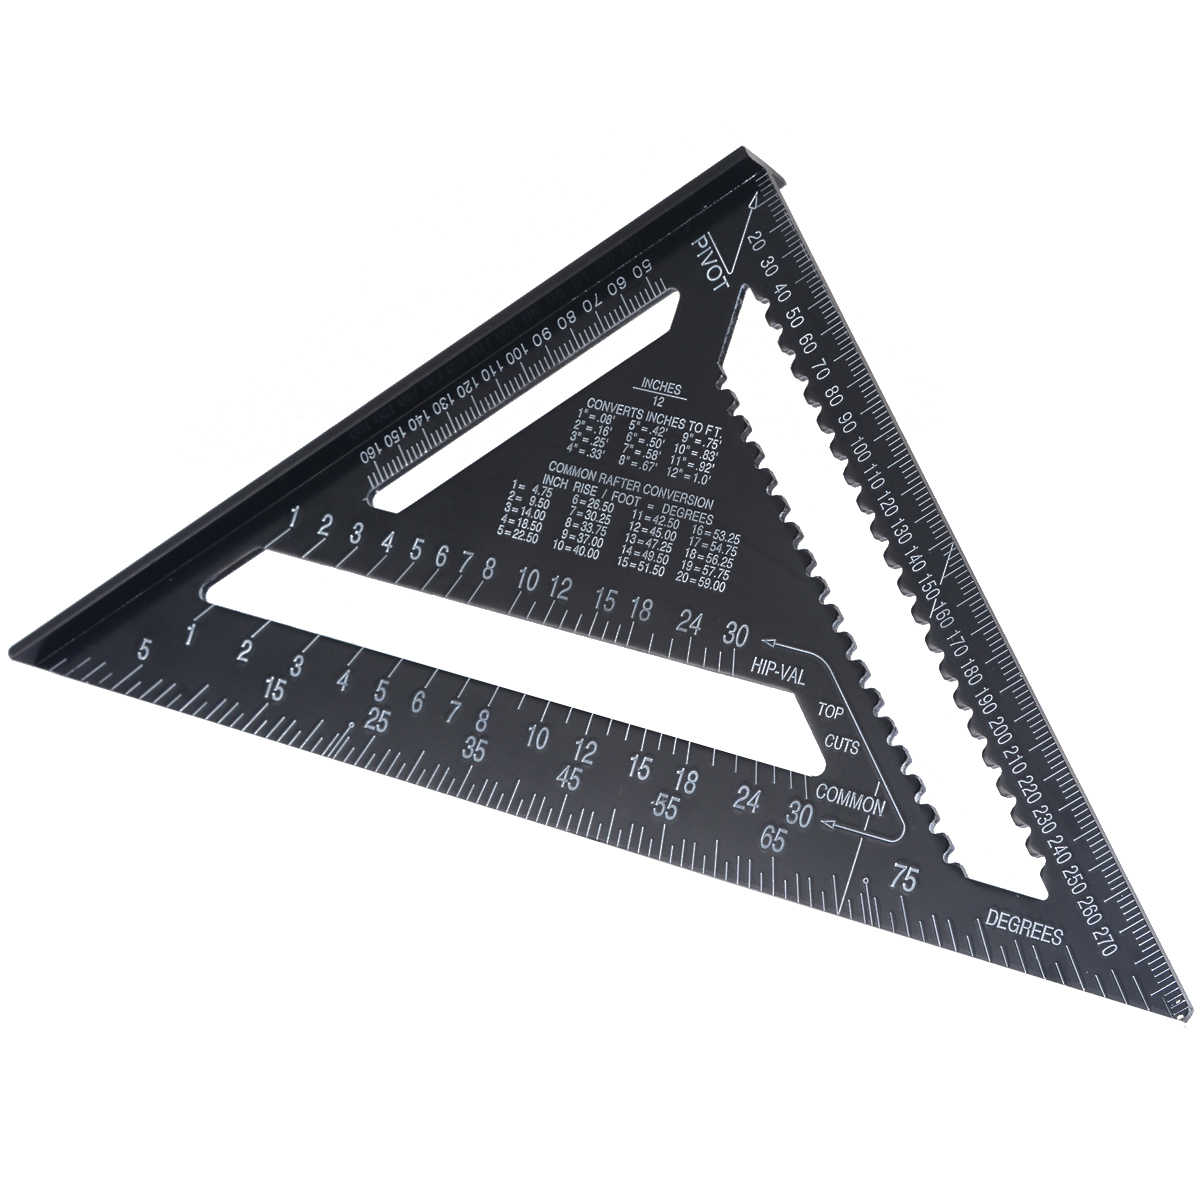 12 Inch Black Tri Square Ruler Aluminium Roofing Rafter Angle